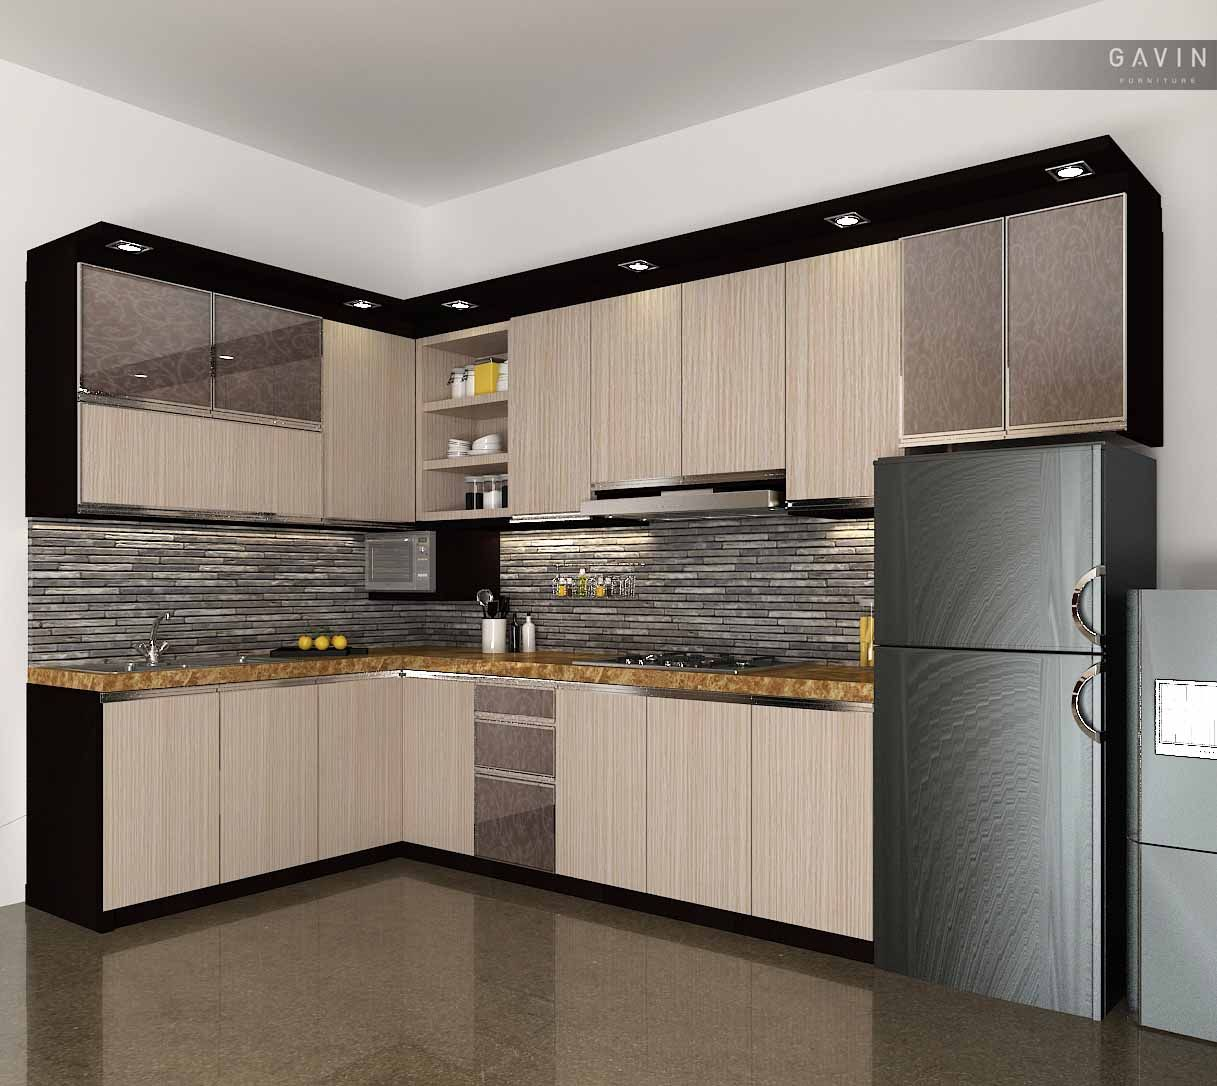 desain kitchen set minimalis hpl di kemanggisan dise os de cocina pinterest kitchen design